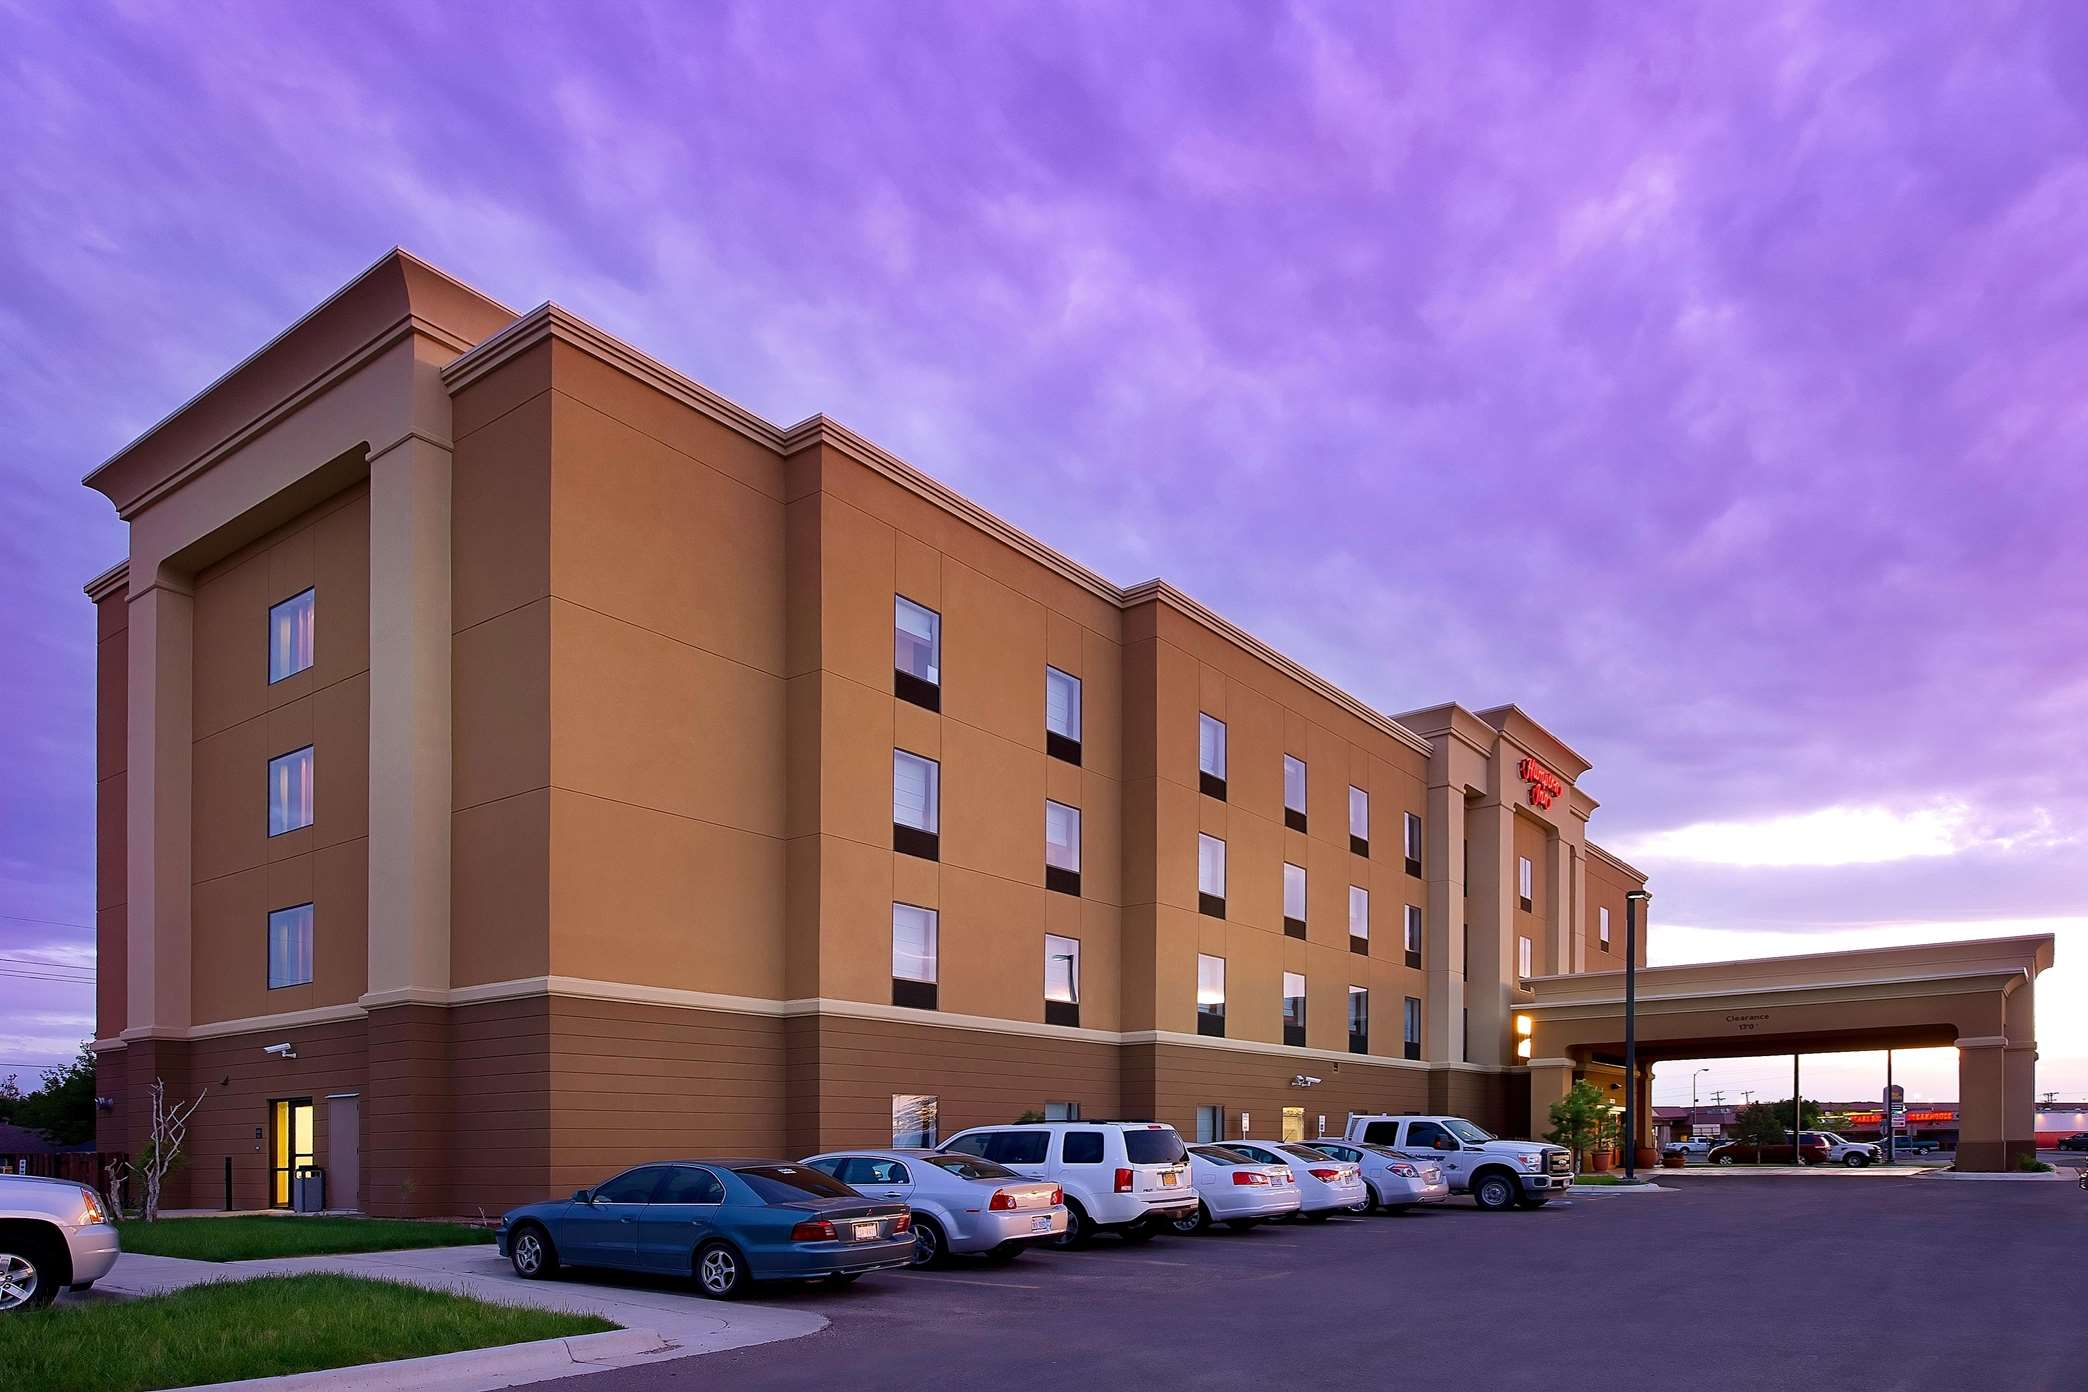 Hampton inn pampa coupons near me in pampa 8coupons for Hotels 8 near me